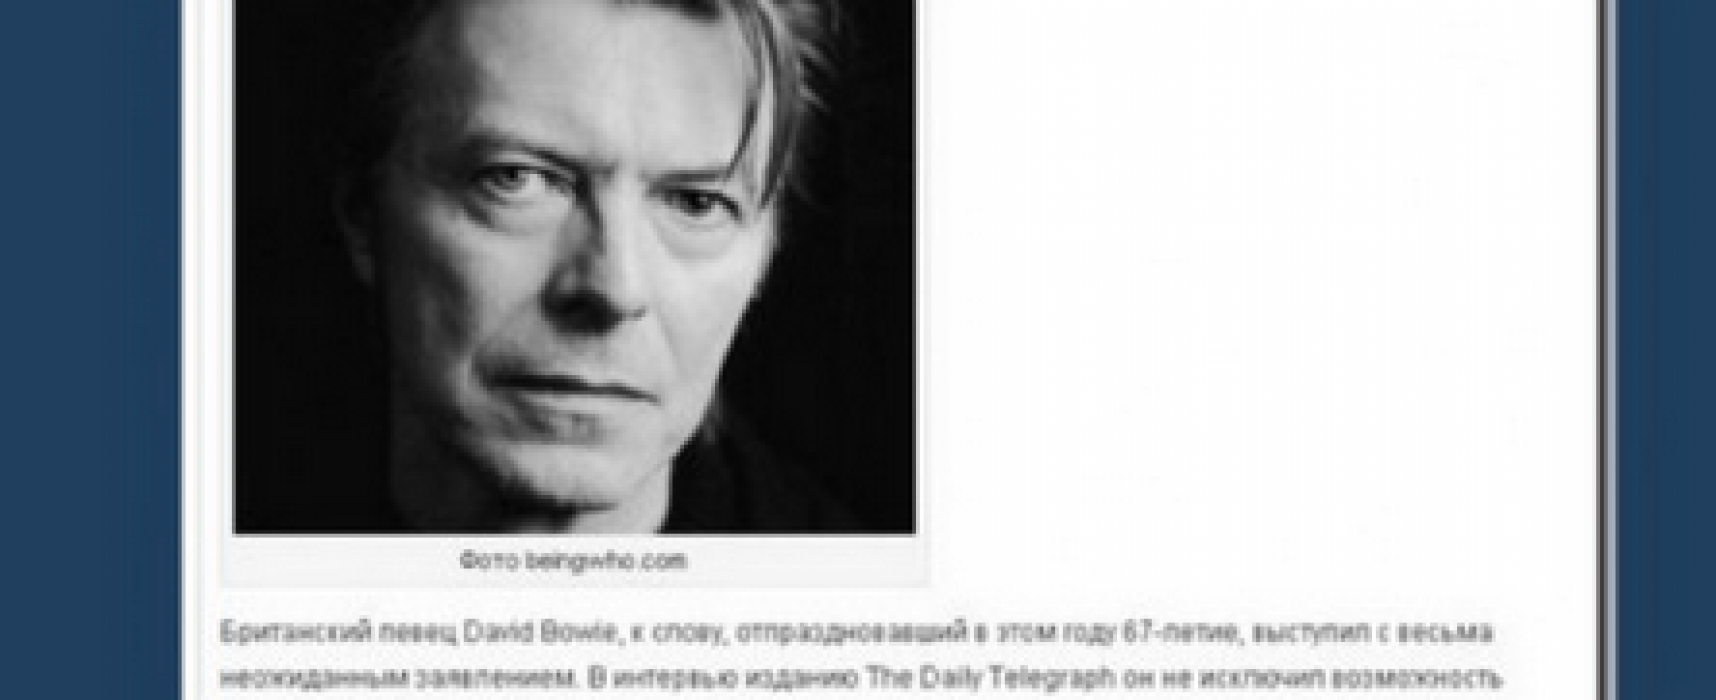 Fake: David Bowie to Give Concert in Donetsk in Support of Novorossia